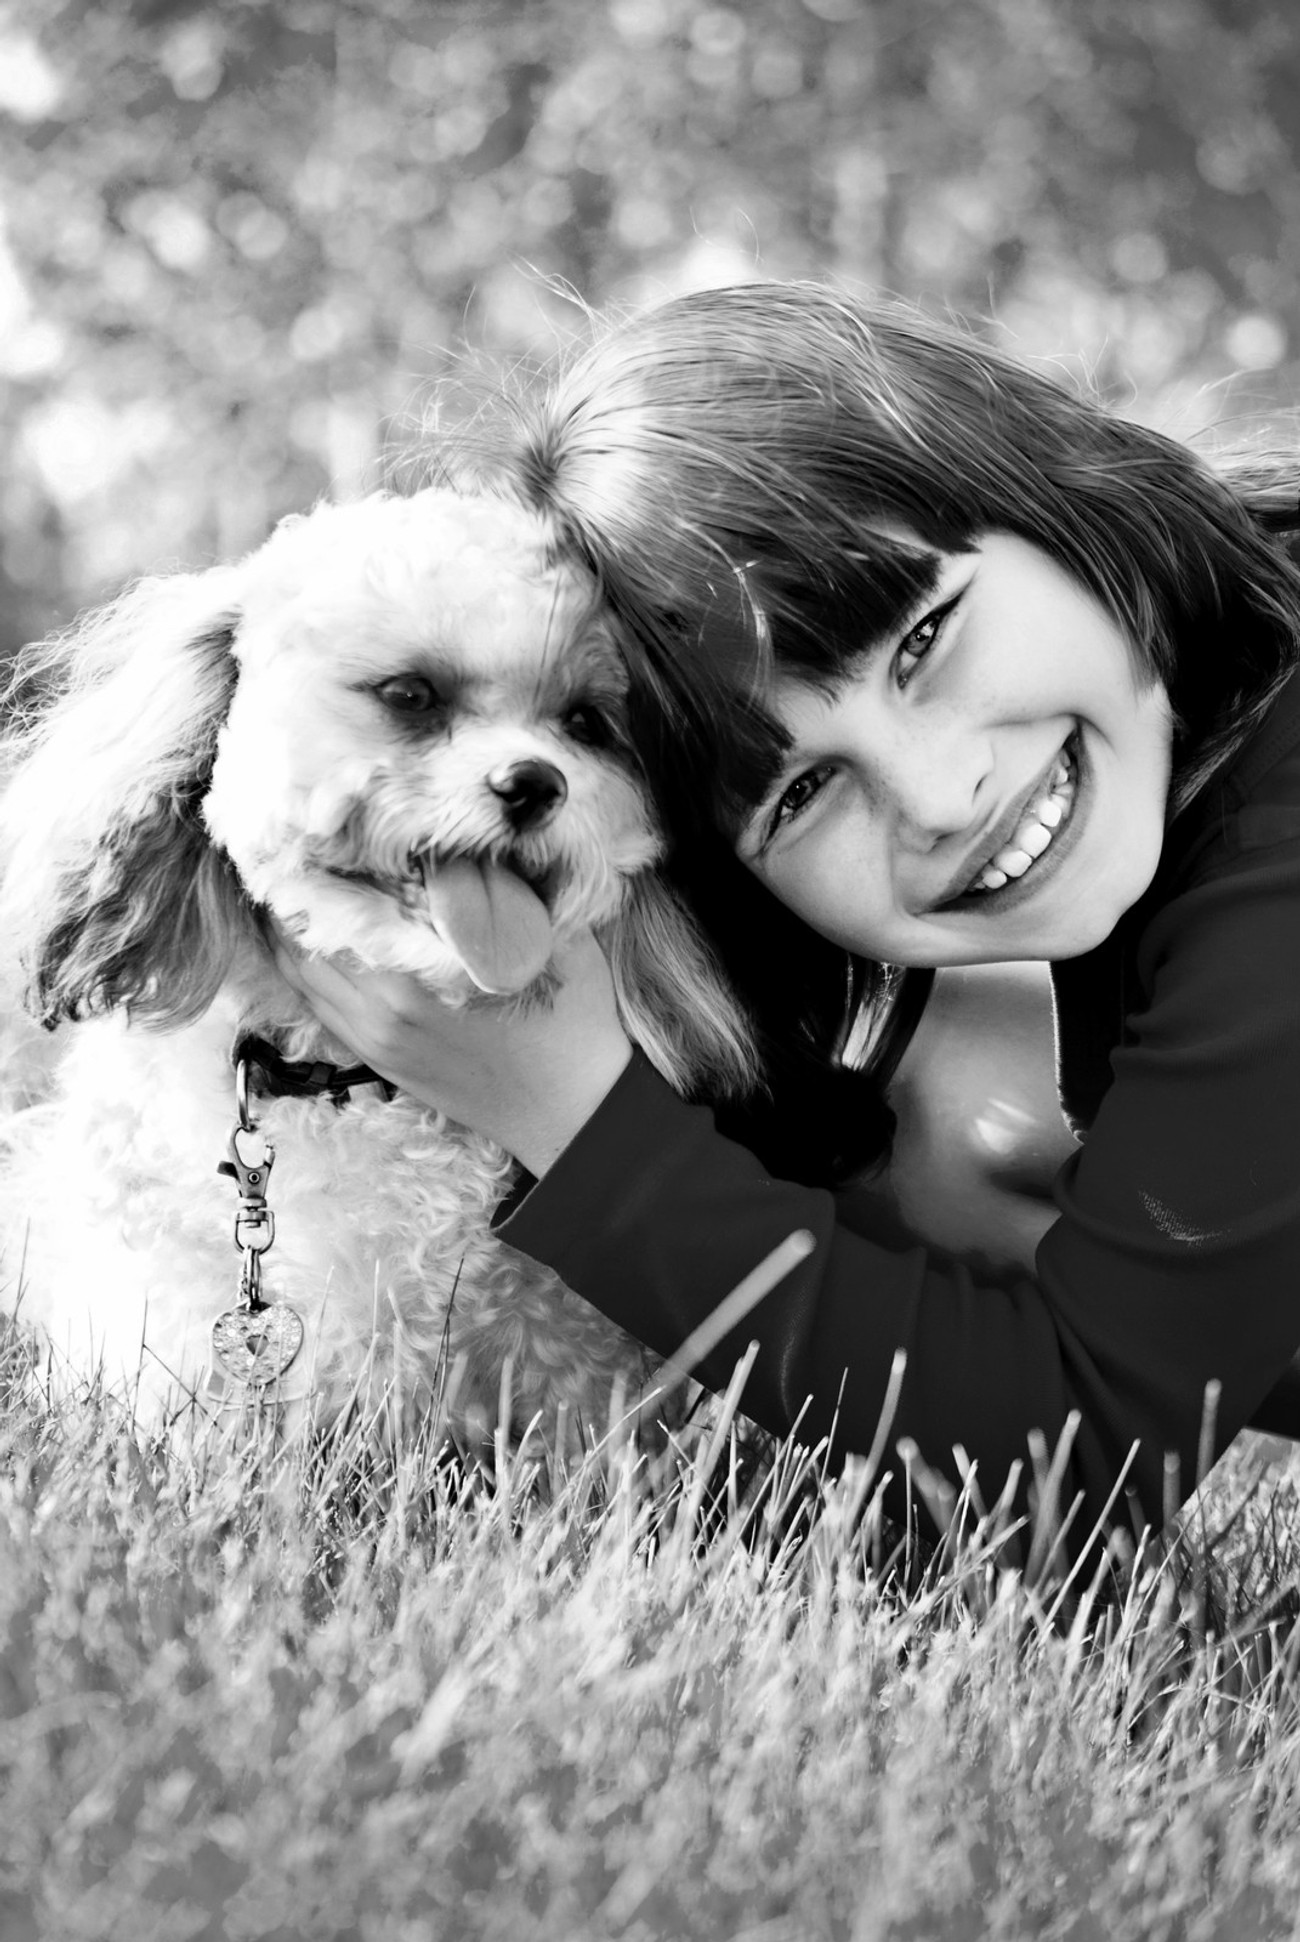 Girl and Dog Black and White